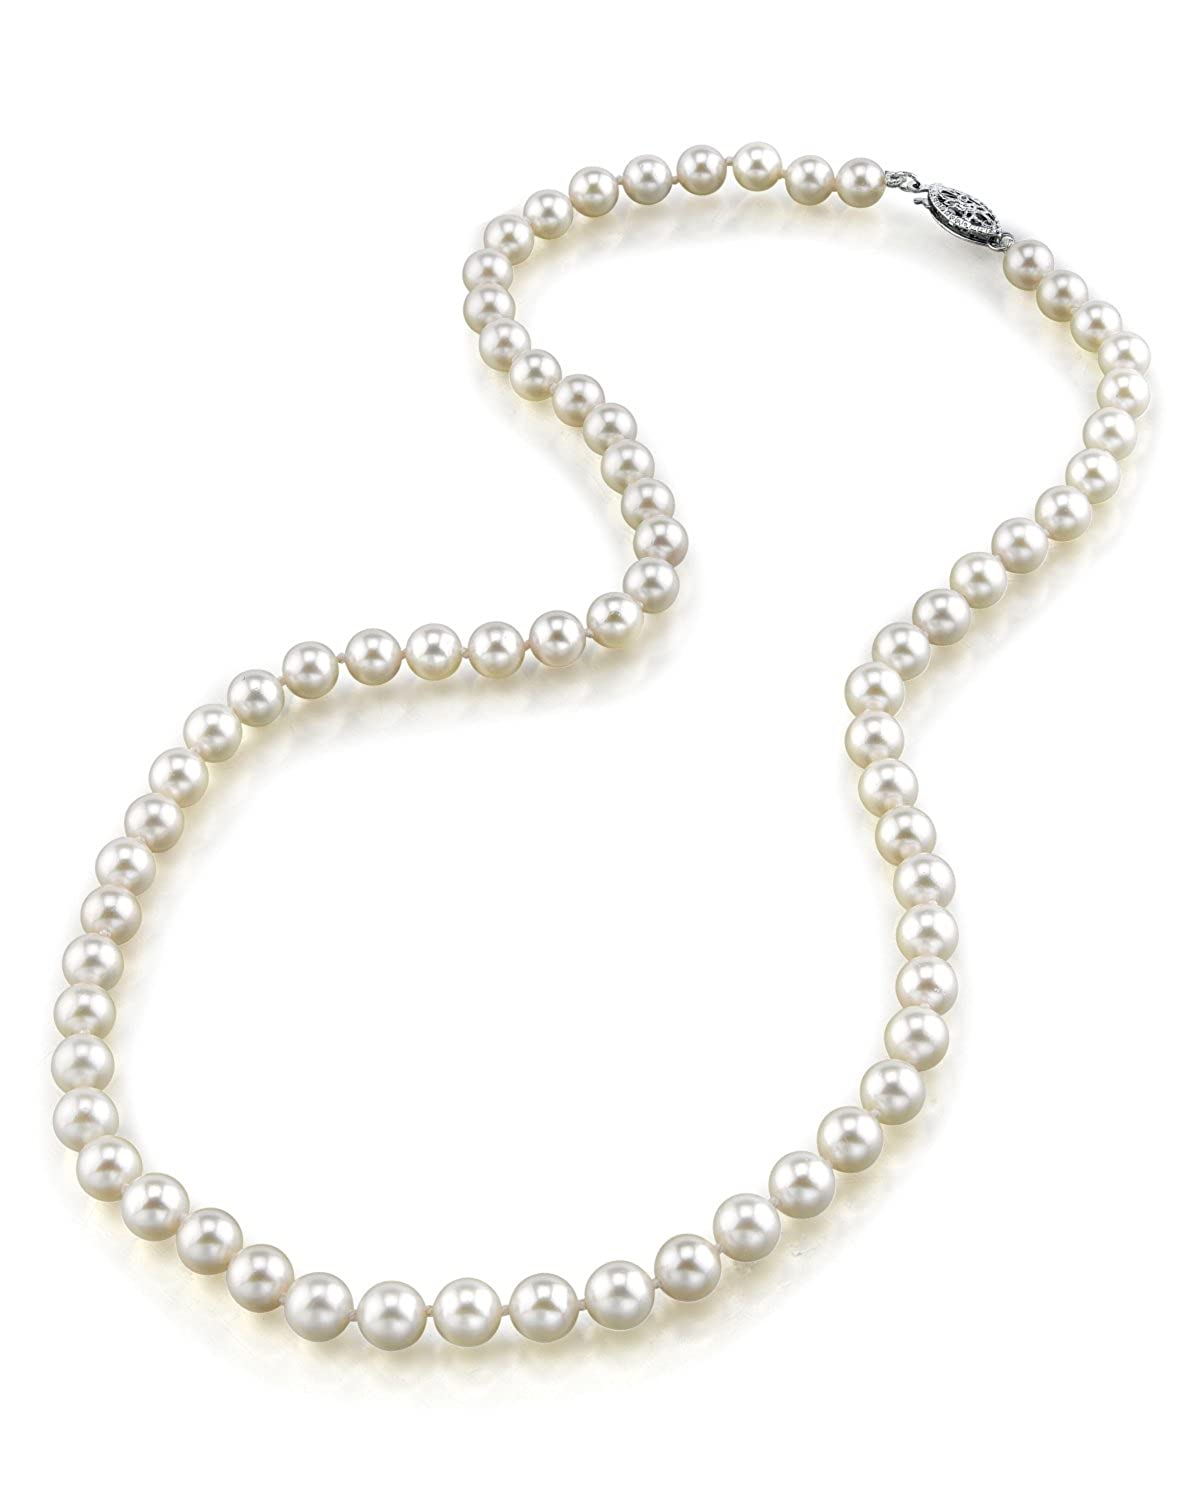 """14K Gold 4.5-5.0mm Japanese Akoya Saltwater White Cultured Pearl Necklace – AAA Quality, 18"""" Princess Length"""